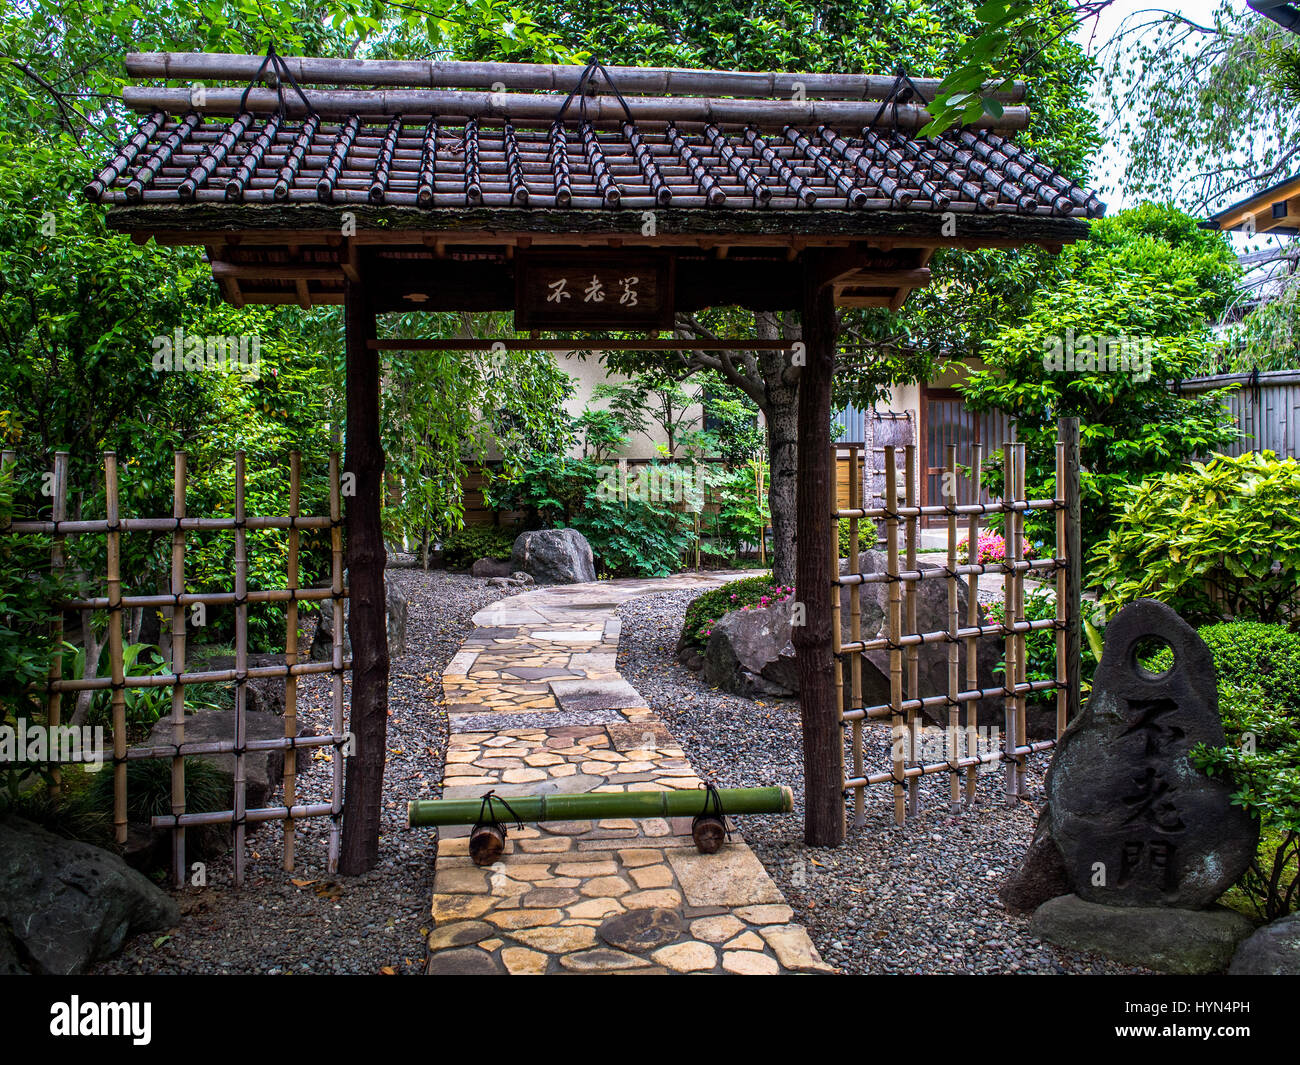 Entrance To Traditional Japanese Garden With Stone Path And ...